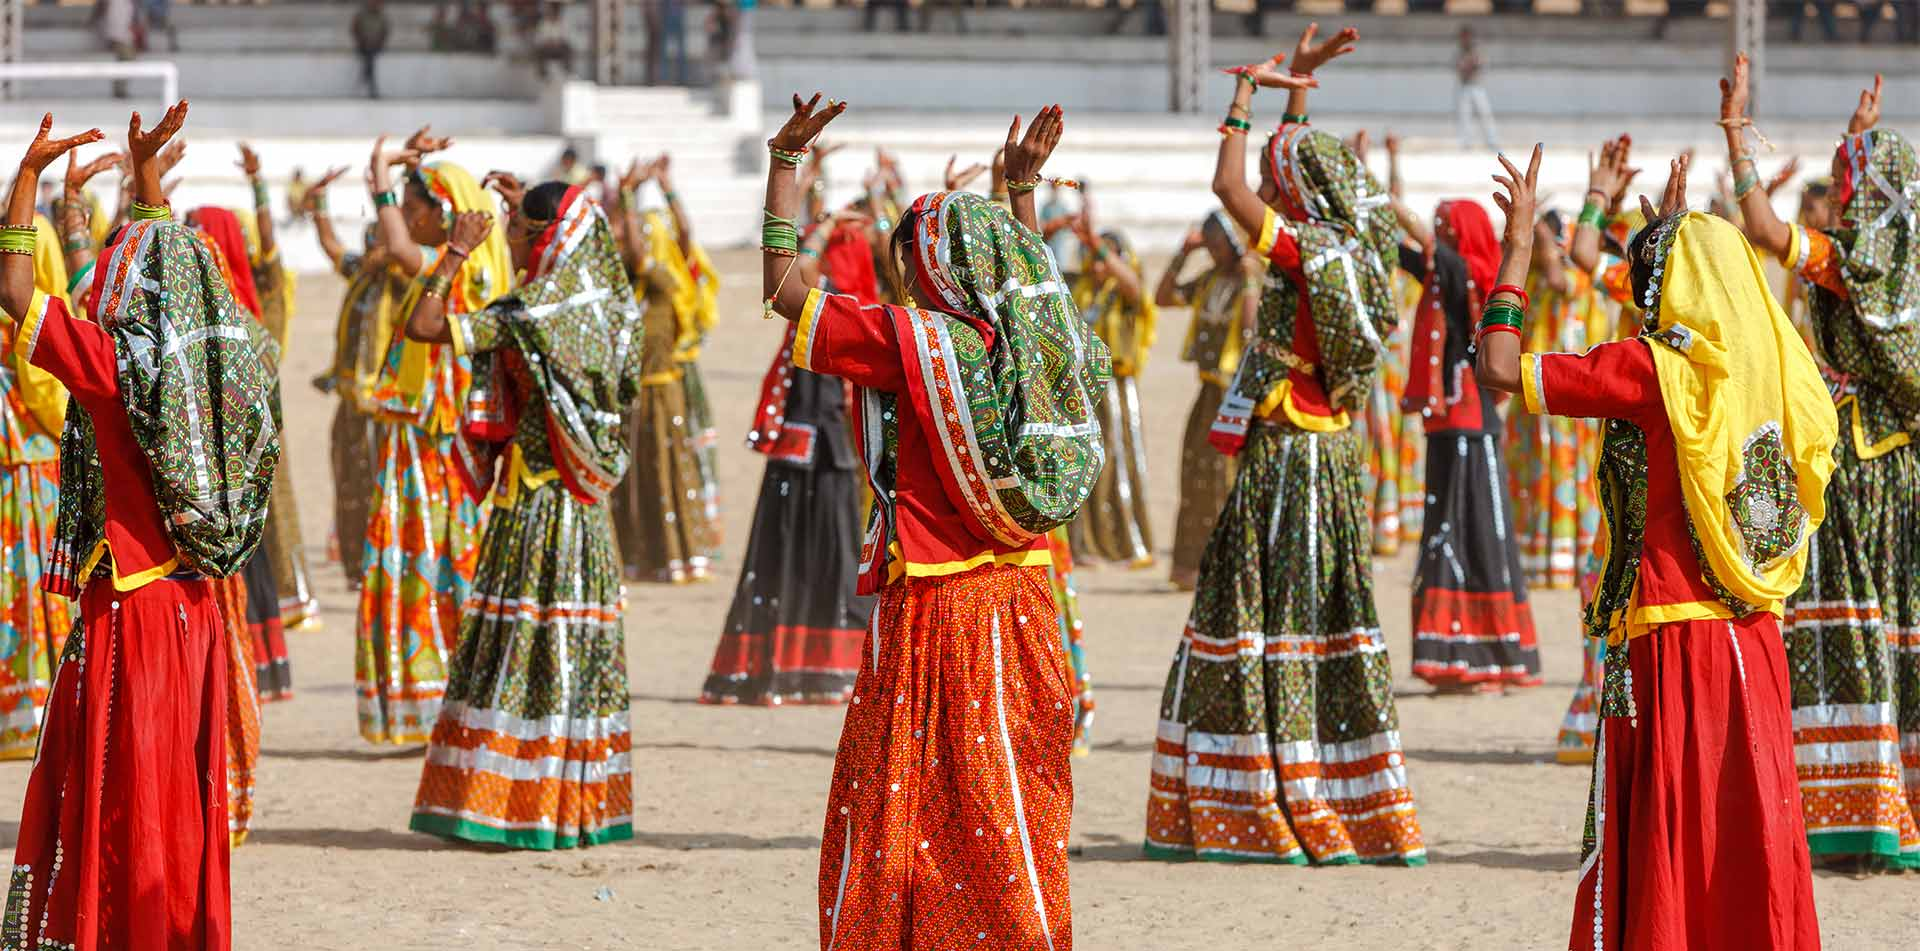 Asia India Rajasthan Pushkar people dancing in traditional clothes - luxury vacation destinations